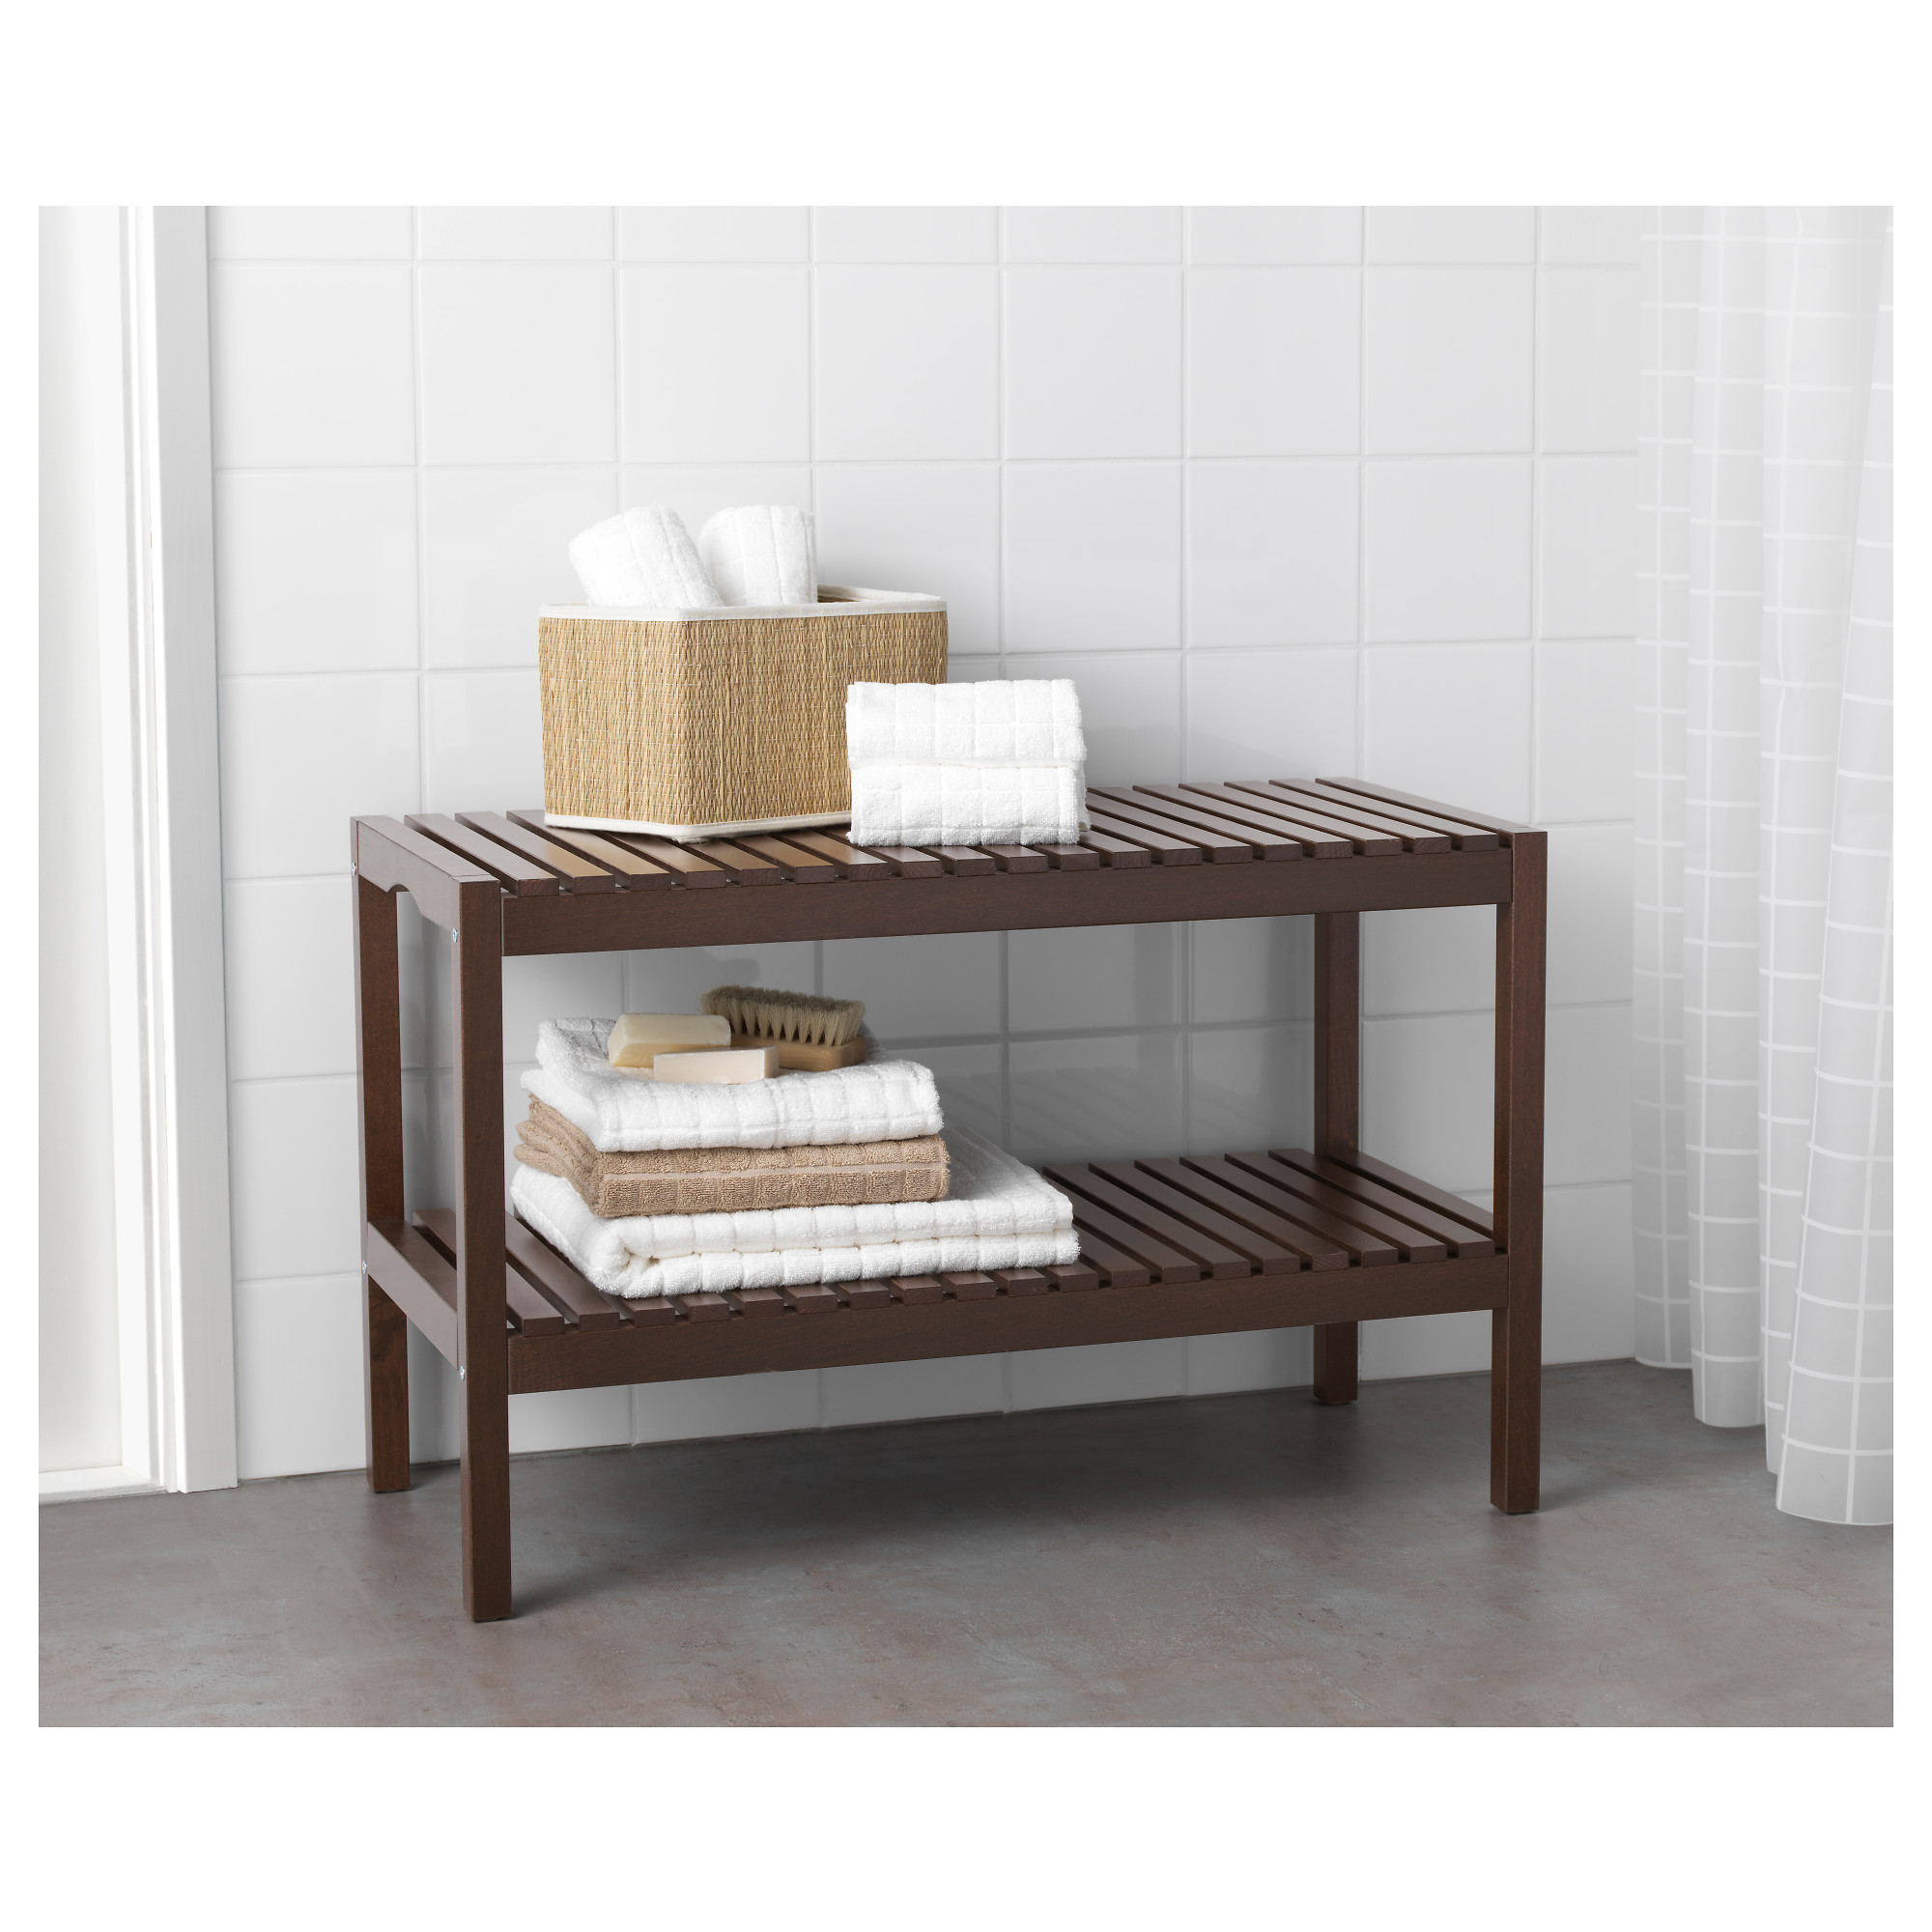 Bathroom Bench molger bench - dark brown - ikea